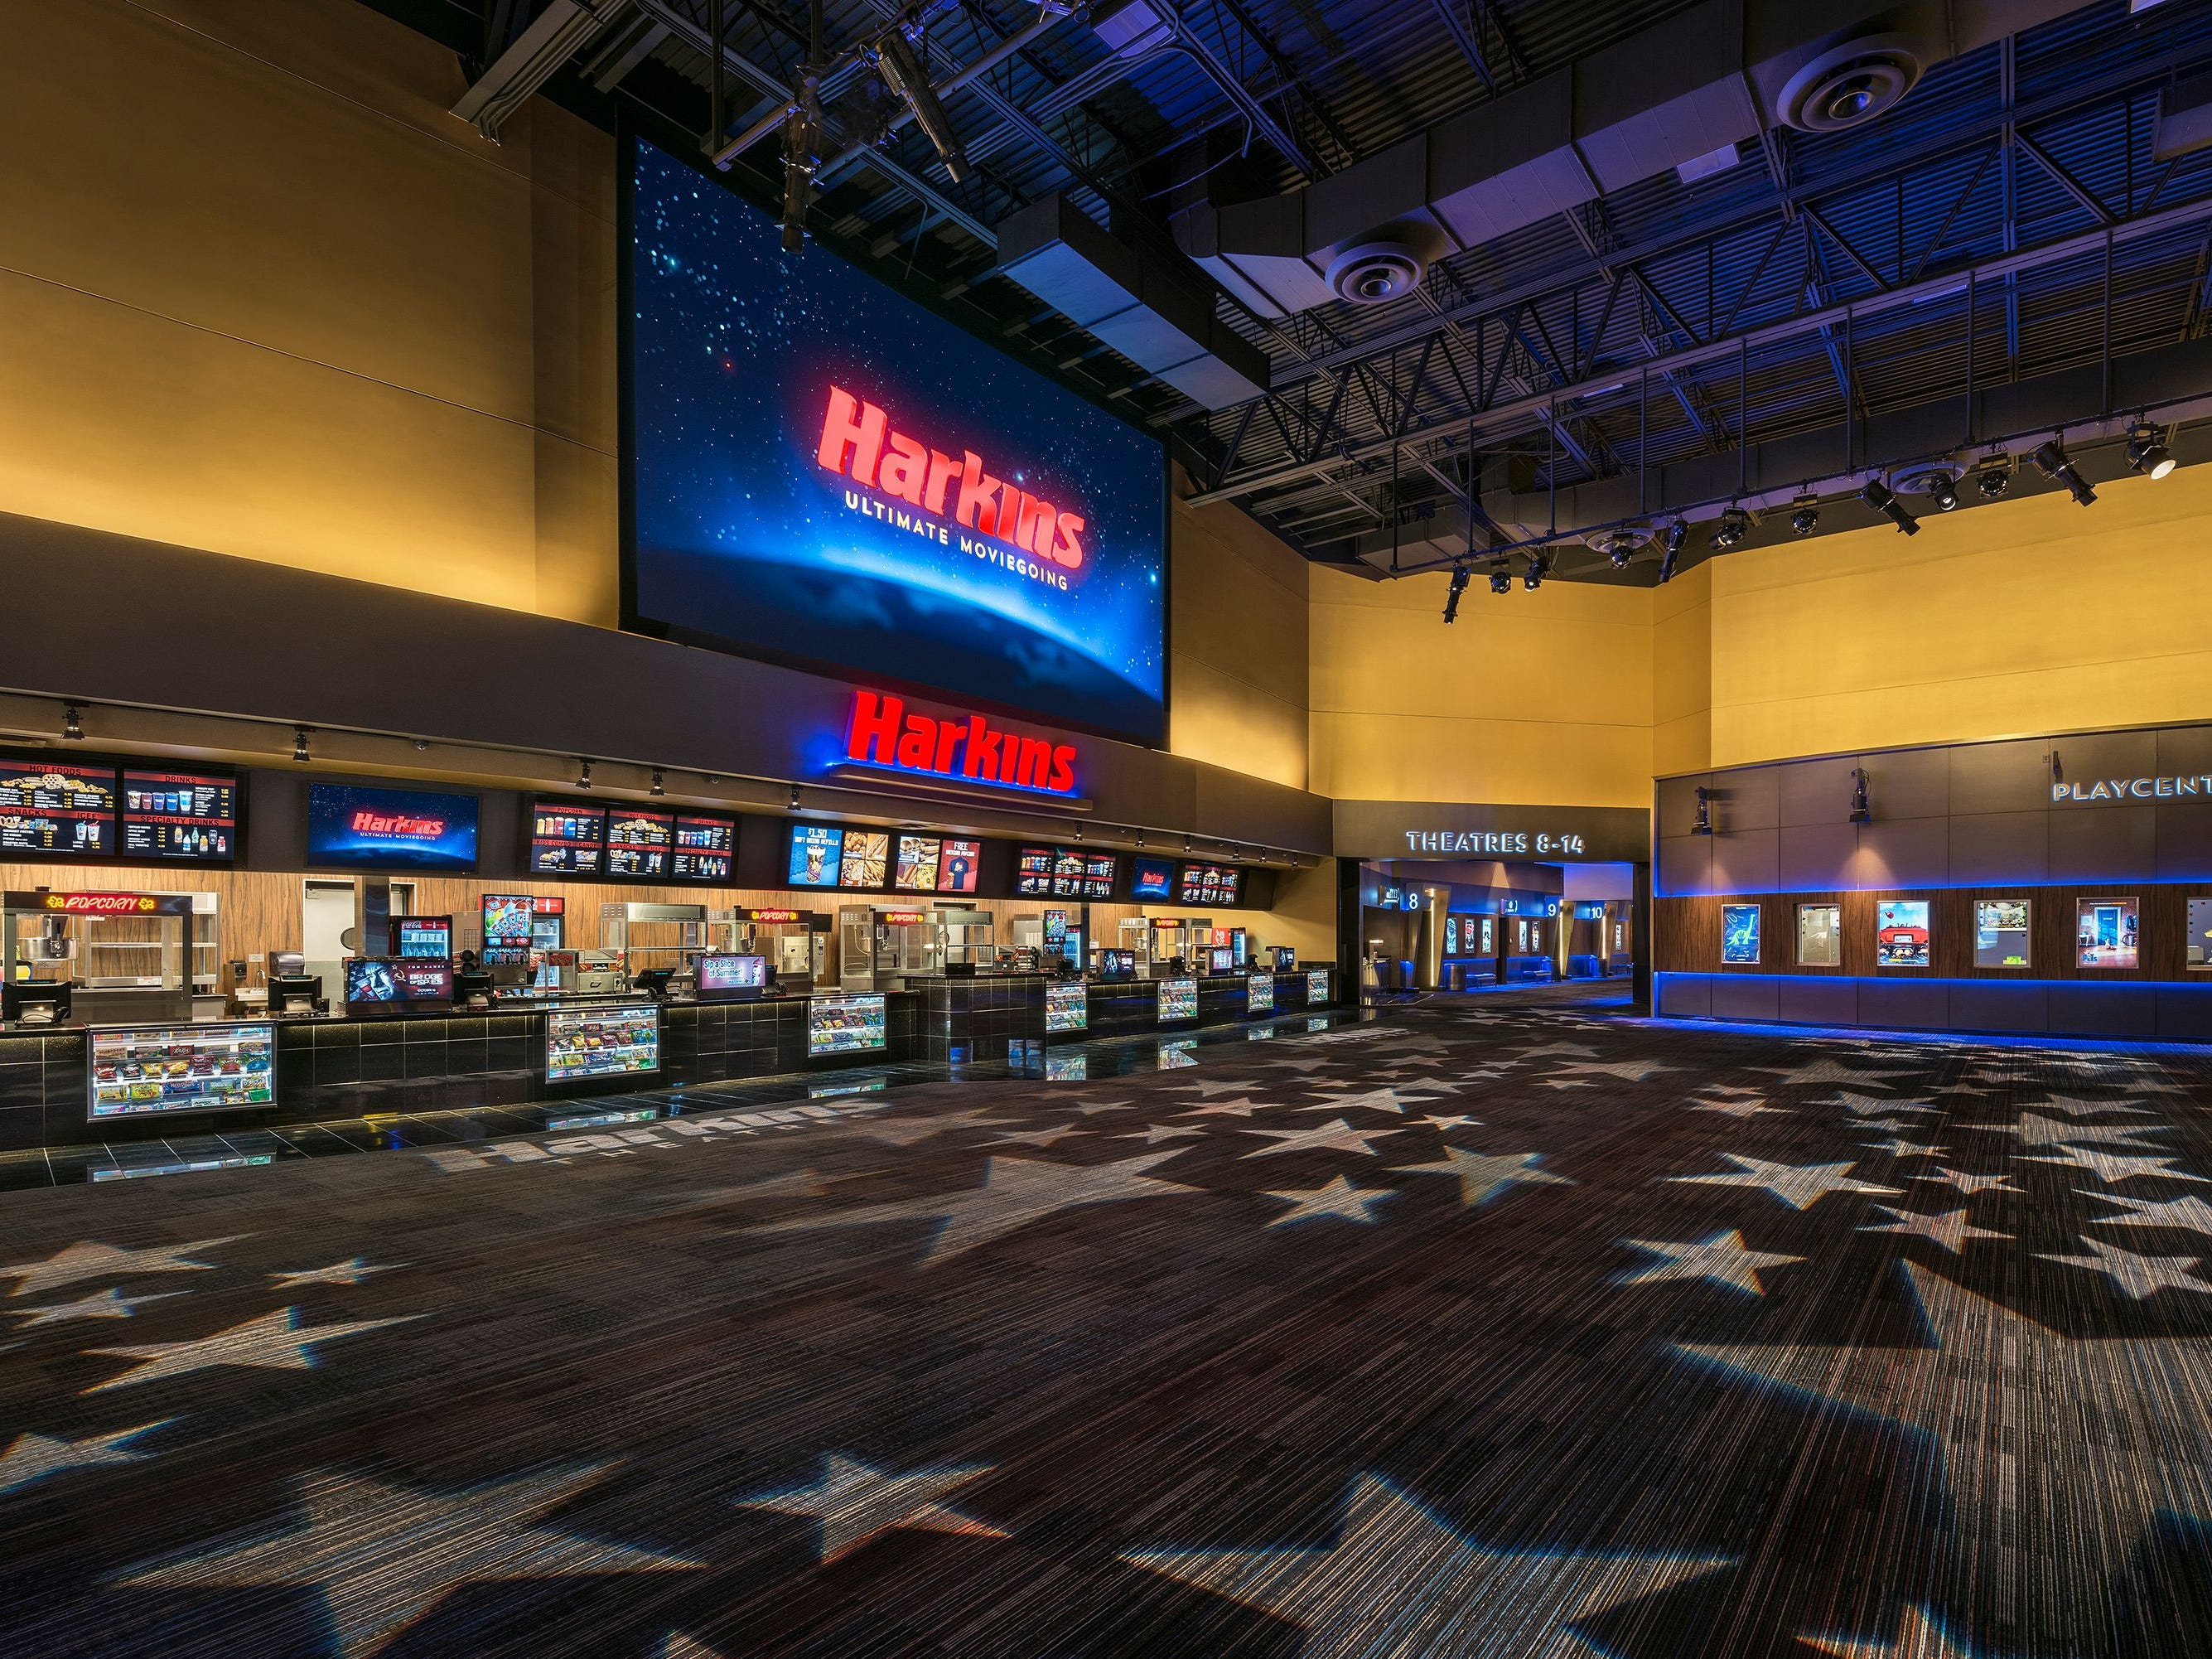 No. 64: Harkins Theatres | Movie theaters | 2019 employees: 2,867 | 2018 employees:2,844 | Ownership: Private | Headquarters: Scottsdale | www.harkinstheatres.com